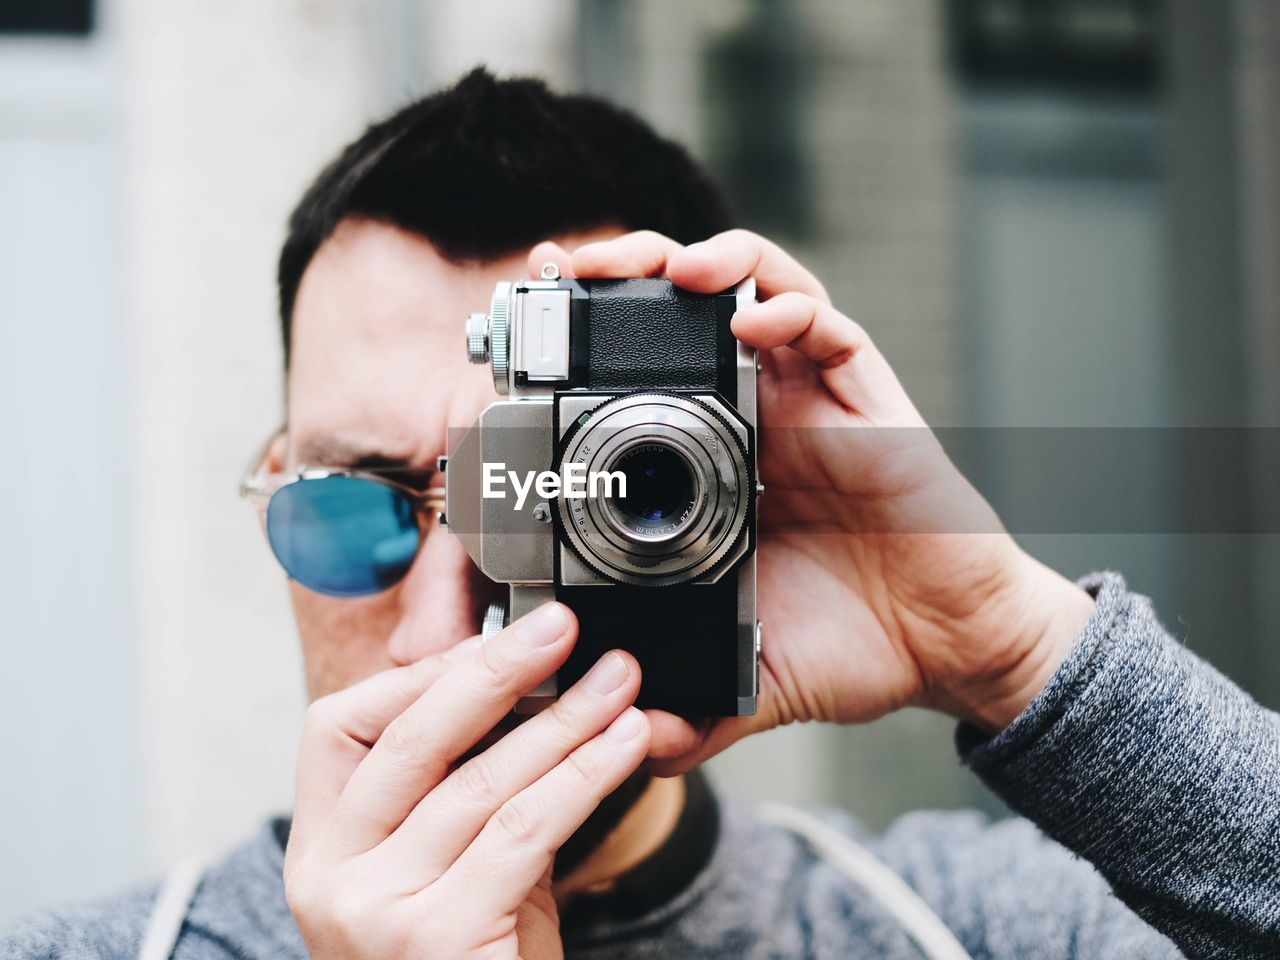 camera - photographic equipment, photography themes, technology, photographing, one person, real people, holding, focus on foreground, photographic equipment, occupation, human hand, men, lifestyles, activity, leisure activity, hand, adult, casual clothing, portrait, photographer, digital camera, slr camera